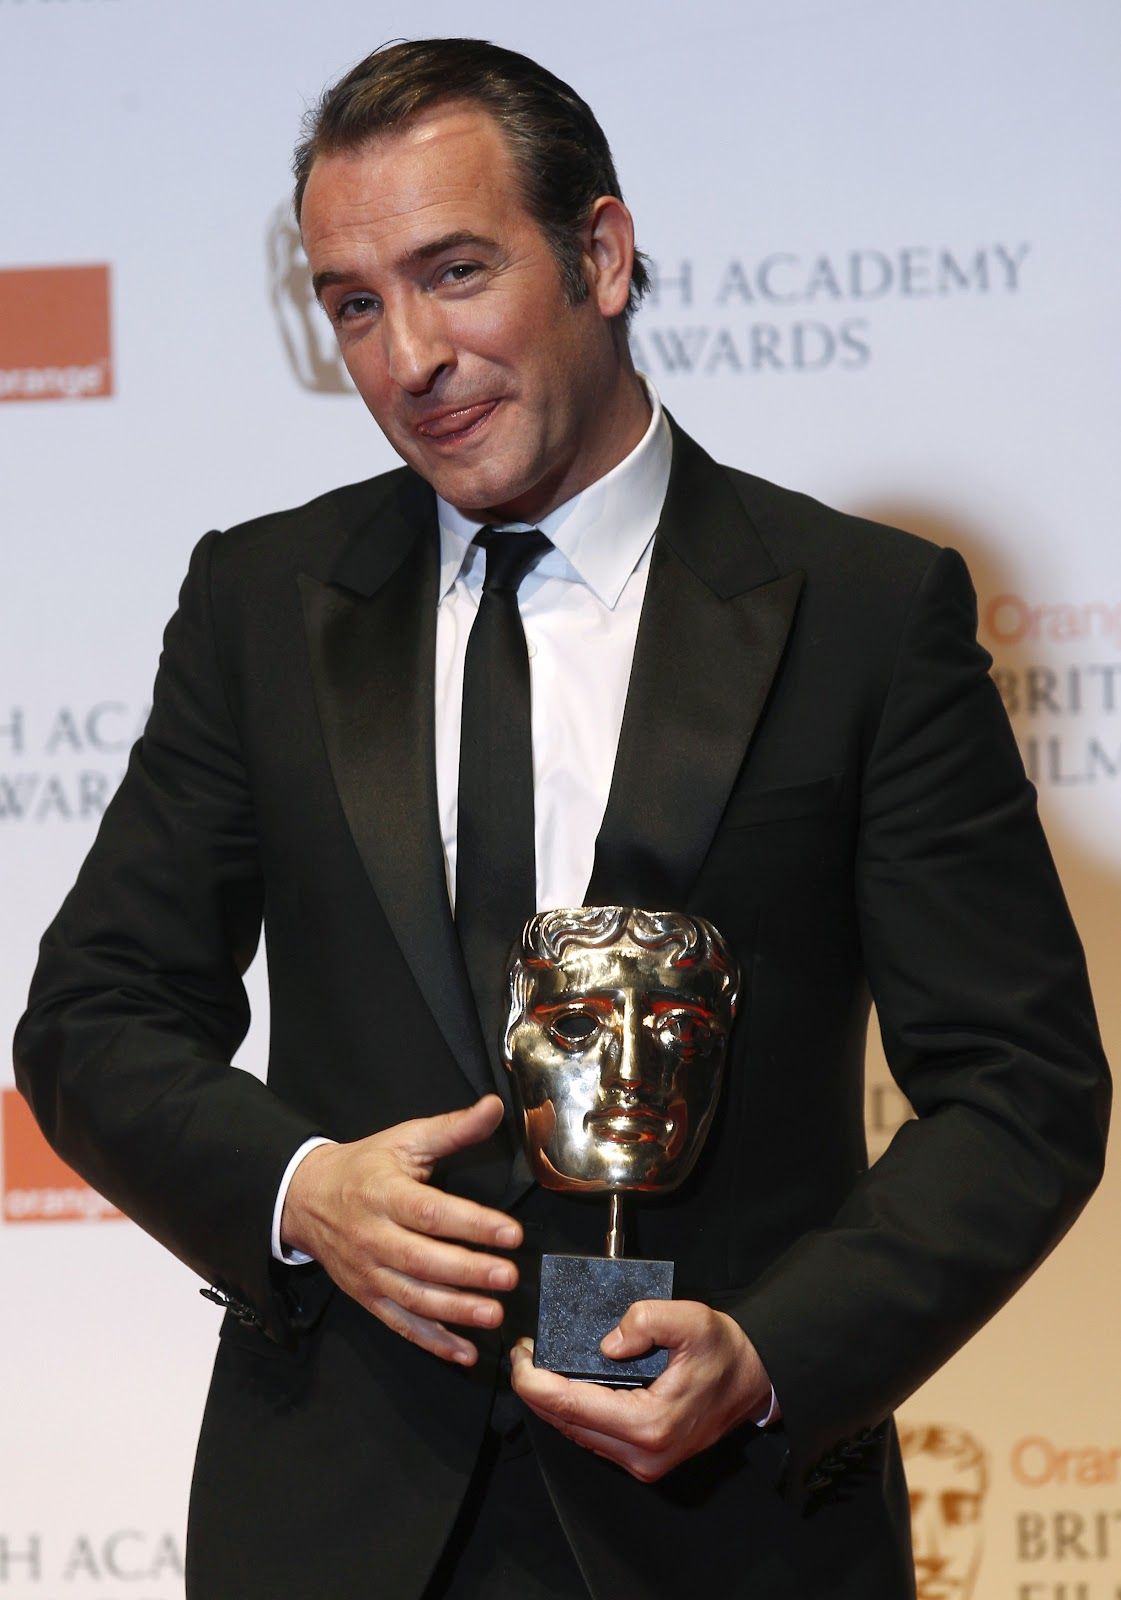 The artist arrasa en los bafta los oscar 2012 for Dujardin michael